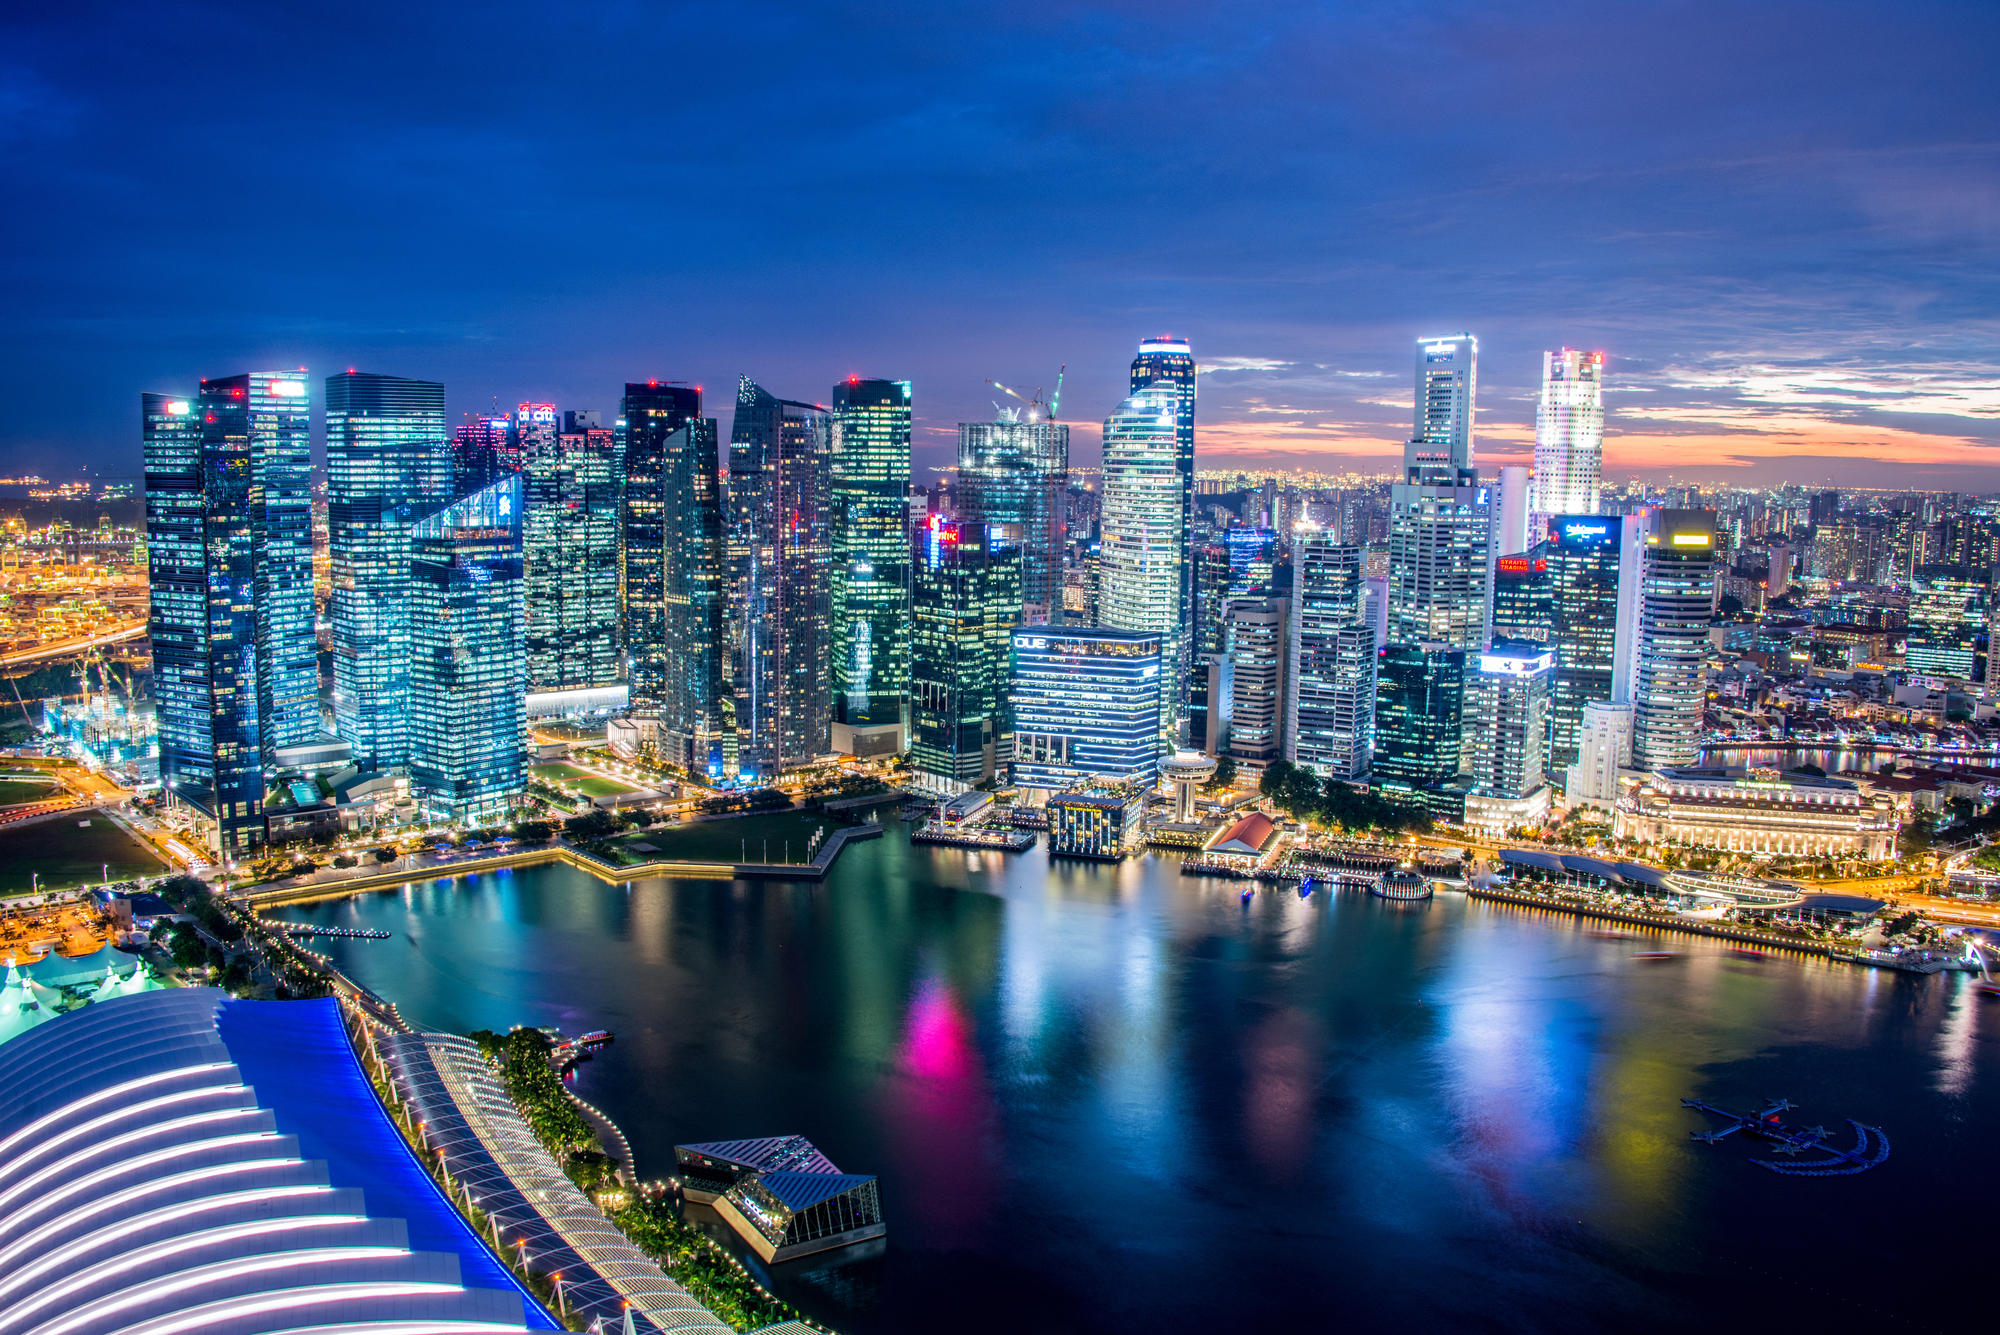 image asset - Will UK emulate Singapore after Brexit?